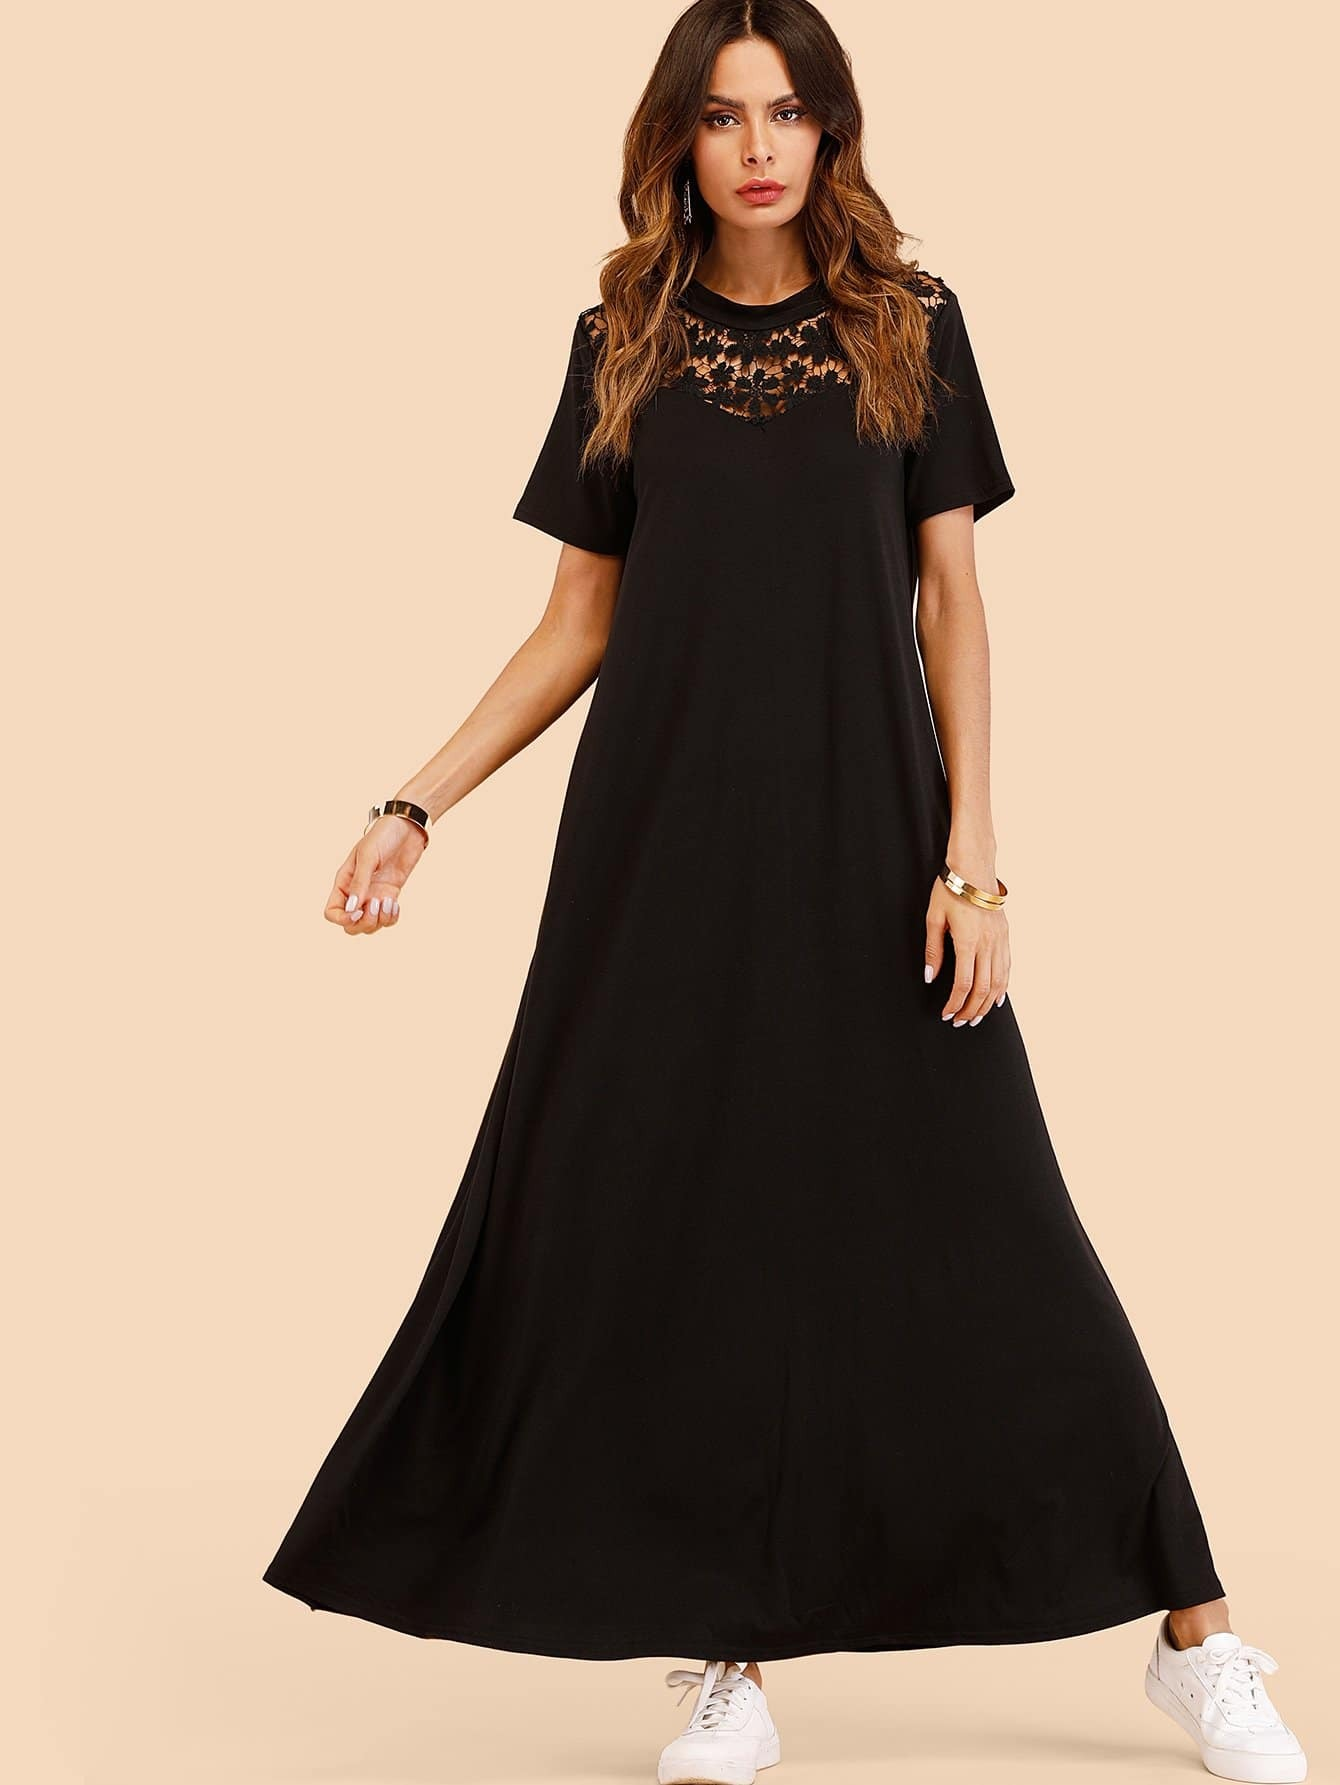 Lace Panel Hollow Out Dress hollow out embroidery panel dress